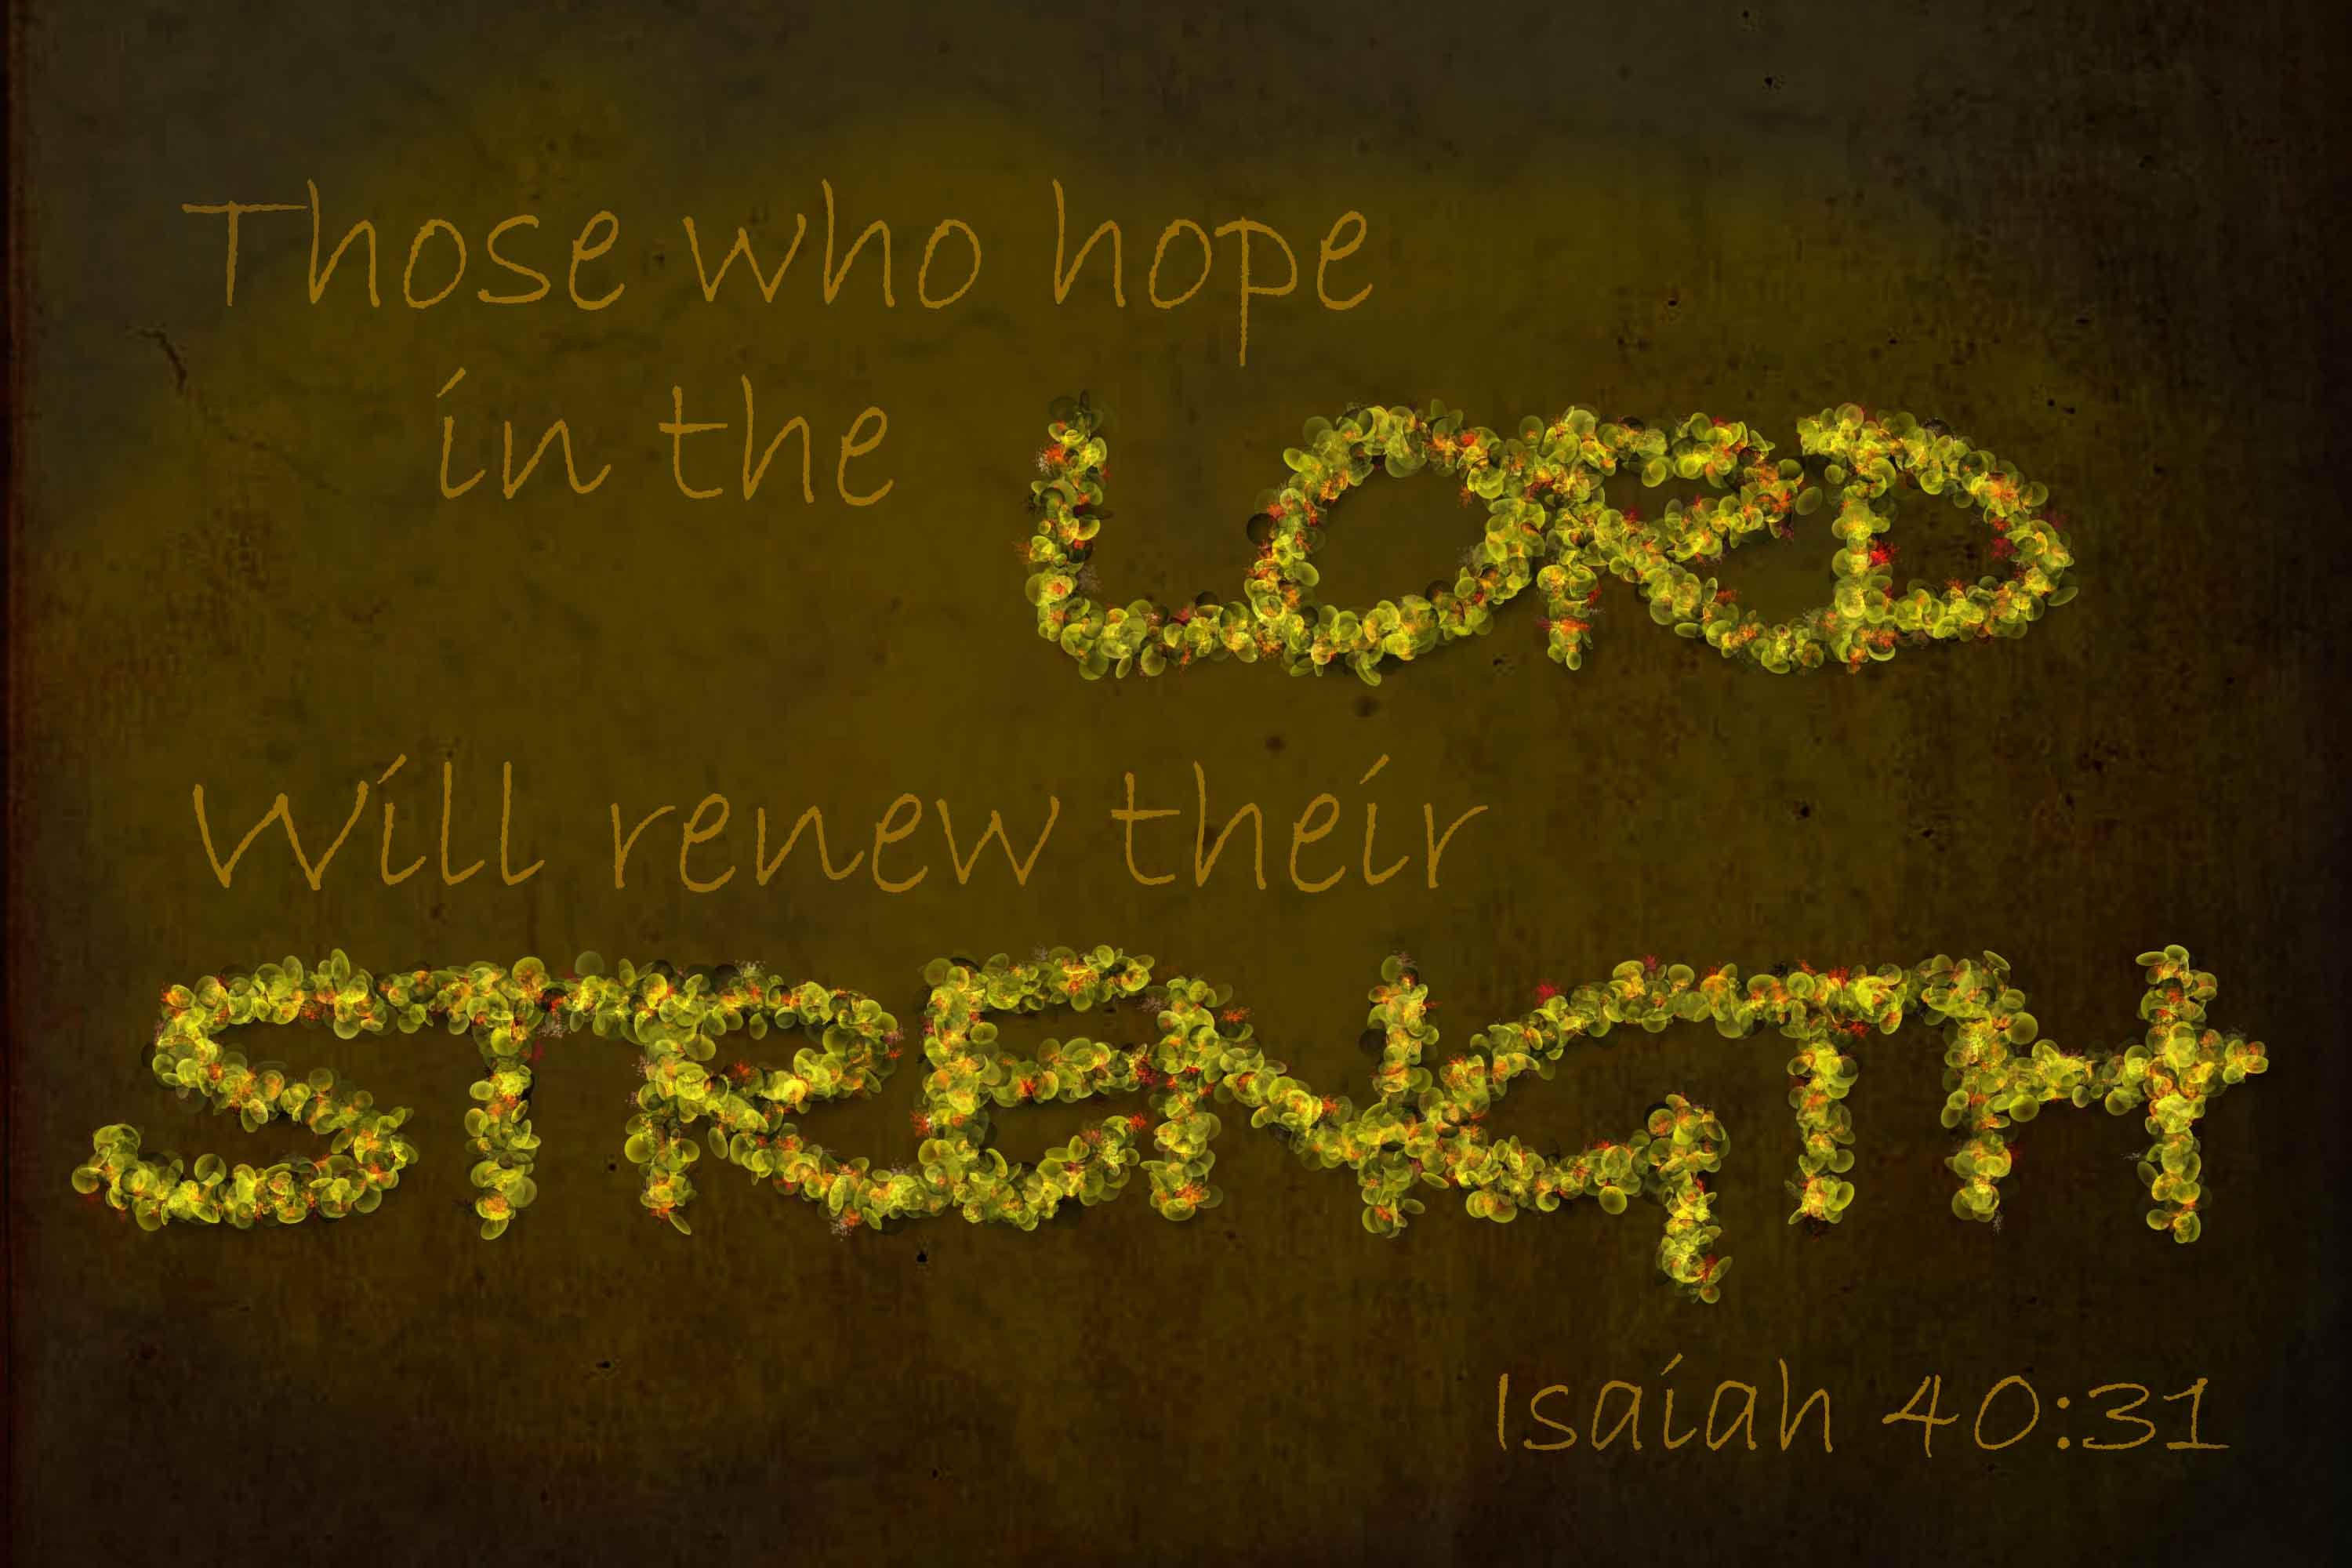 those-who-hope-in-the-lord-is-40-31